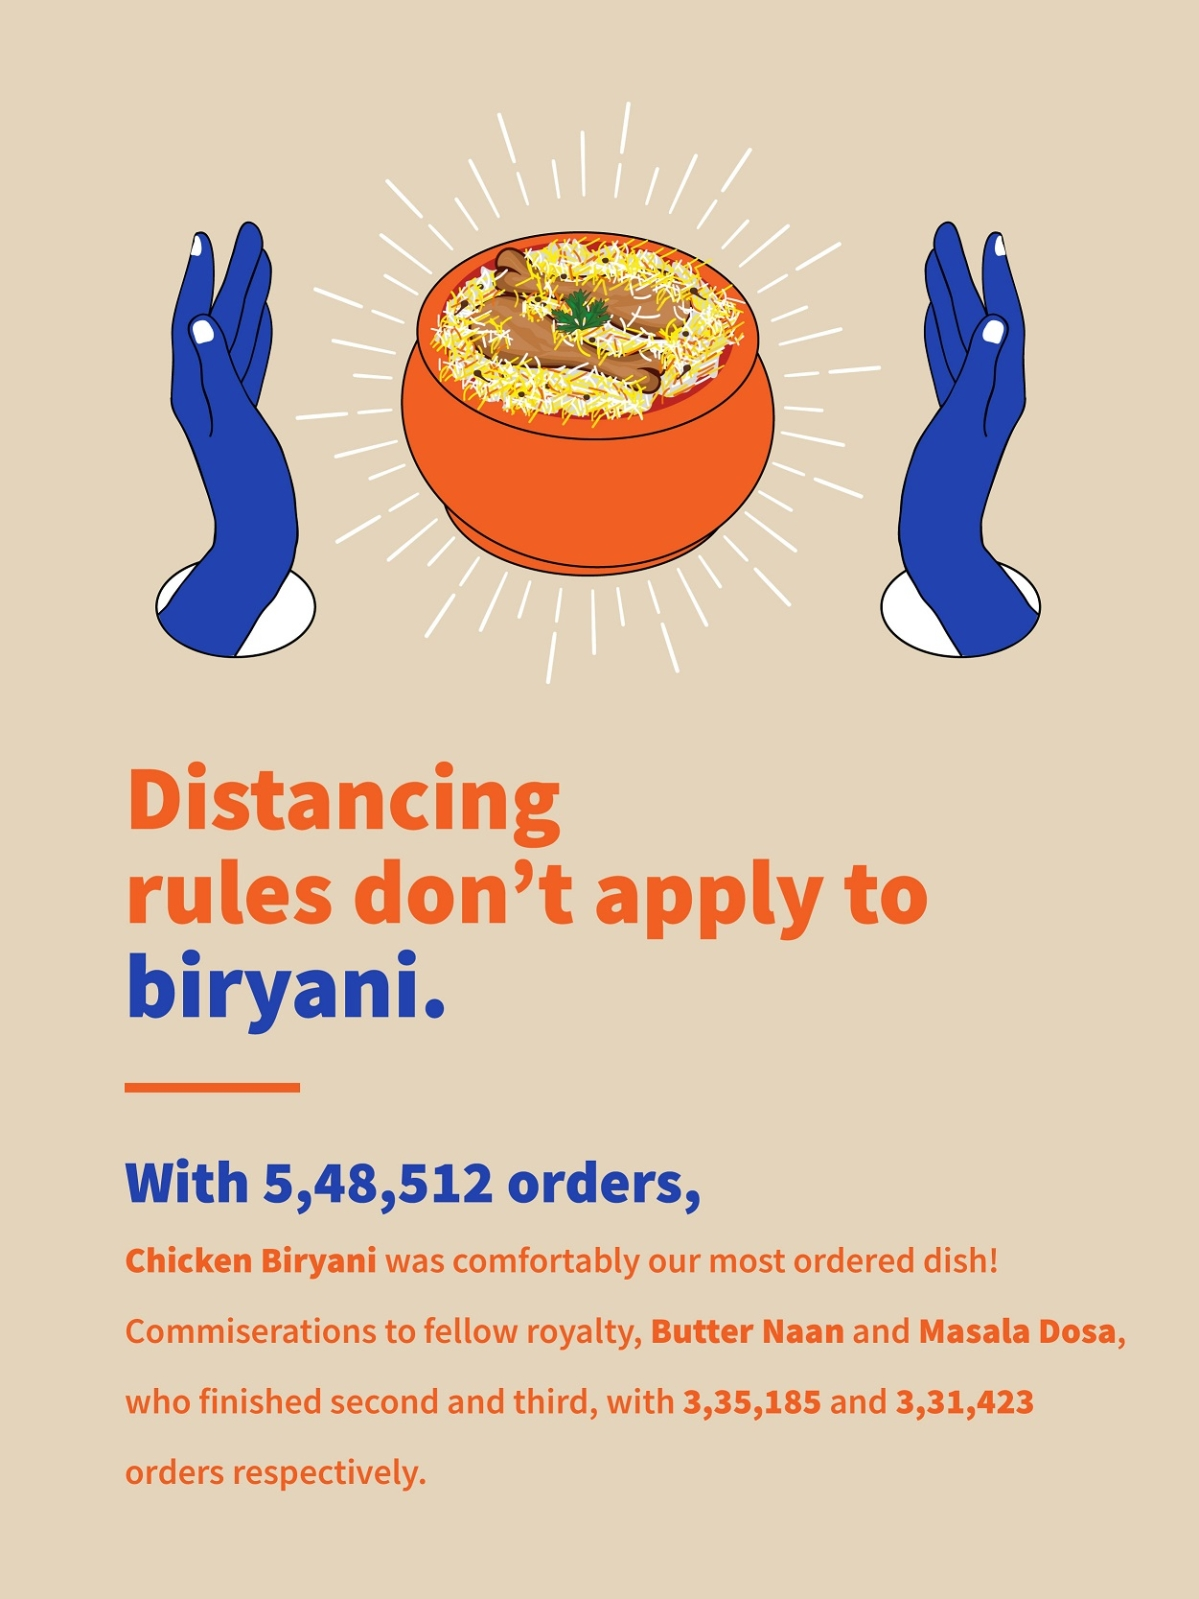 """On average, 65,000 meal orders were placed by 8 pm during quarantine"": Swiggy"